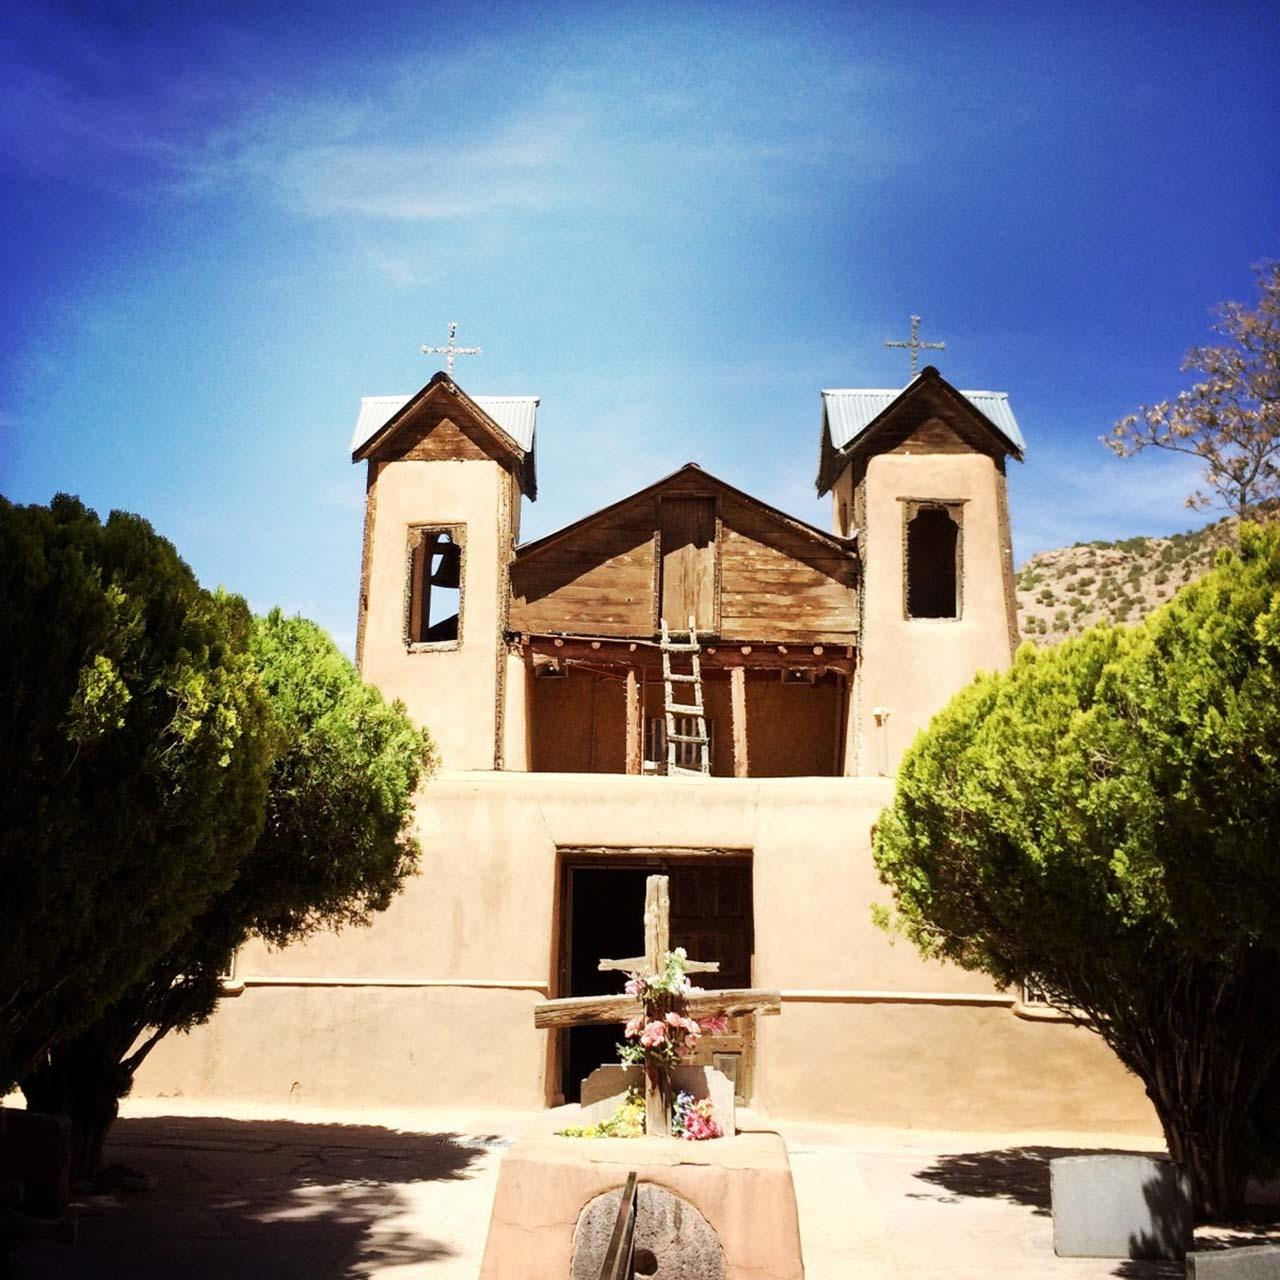 #Taos attraction #Santuario Chimayo #Easter Pilgrimmage #Taos #New Mexico